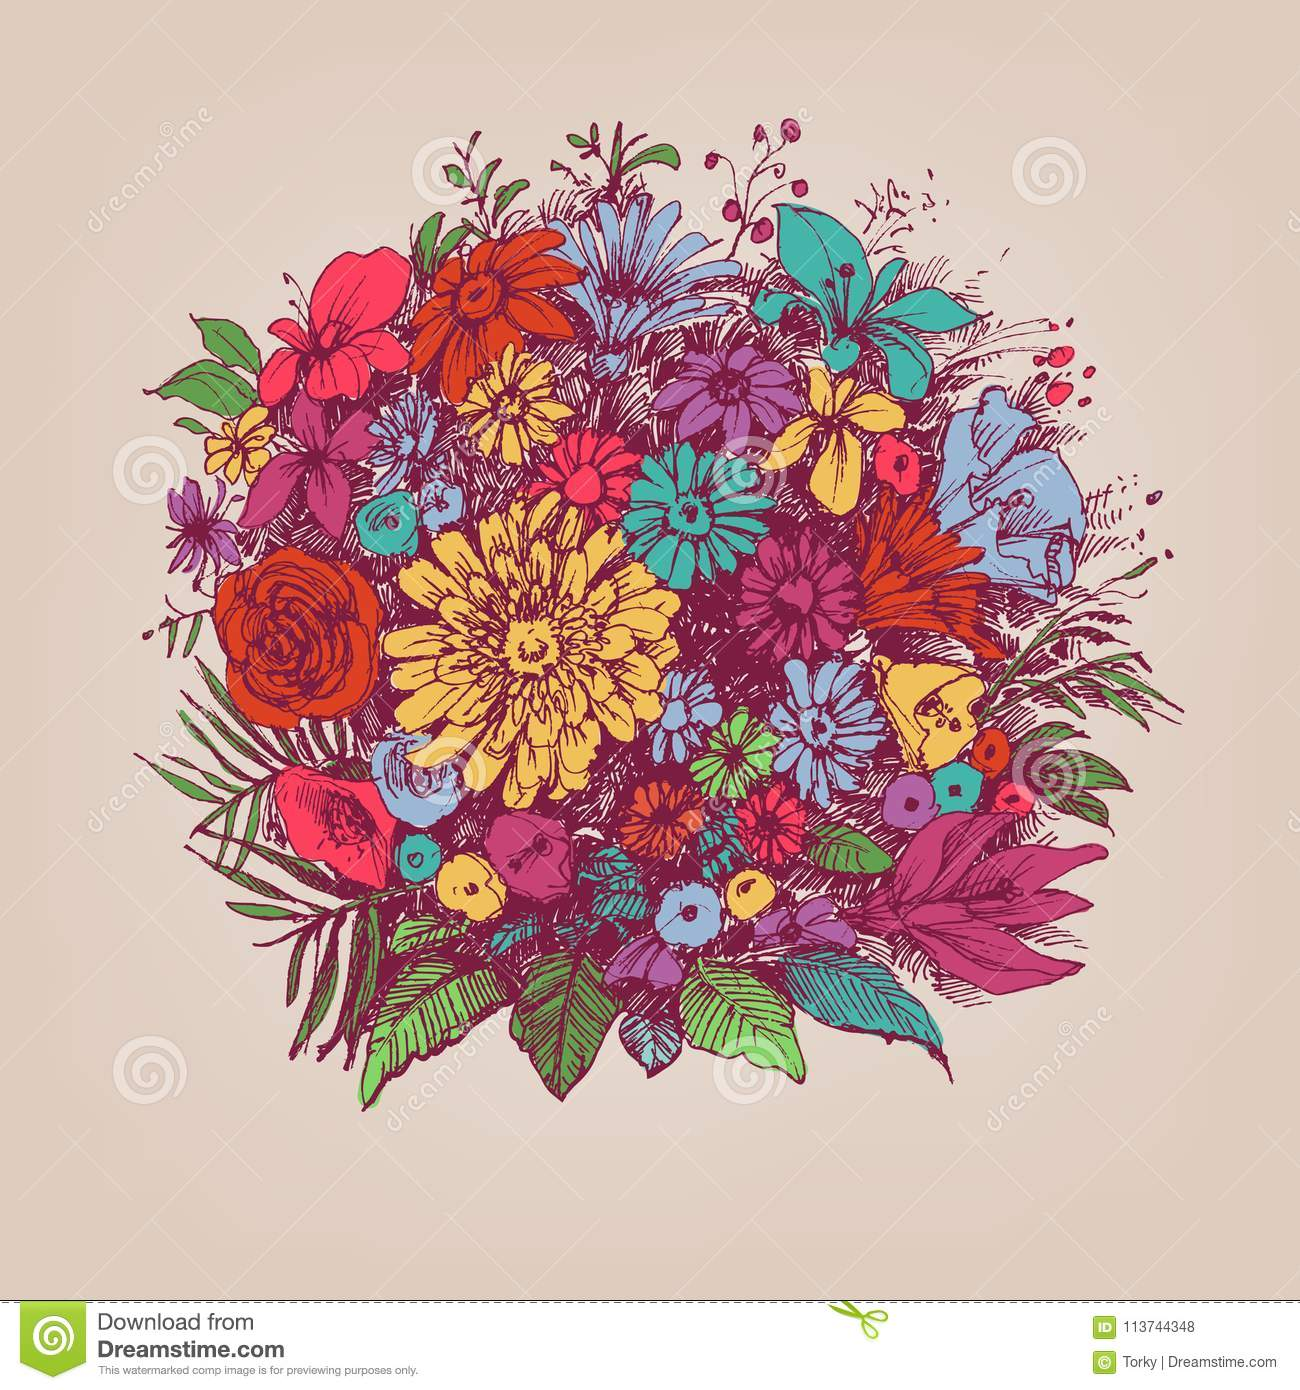 Big Floral Bouquet Stock Vector Illustration Of Birthday 113744348